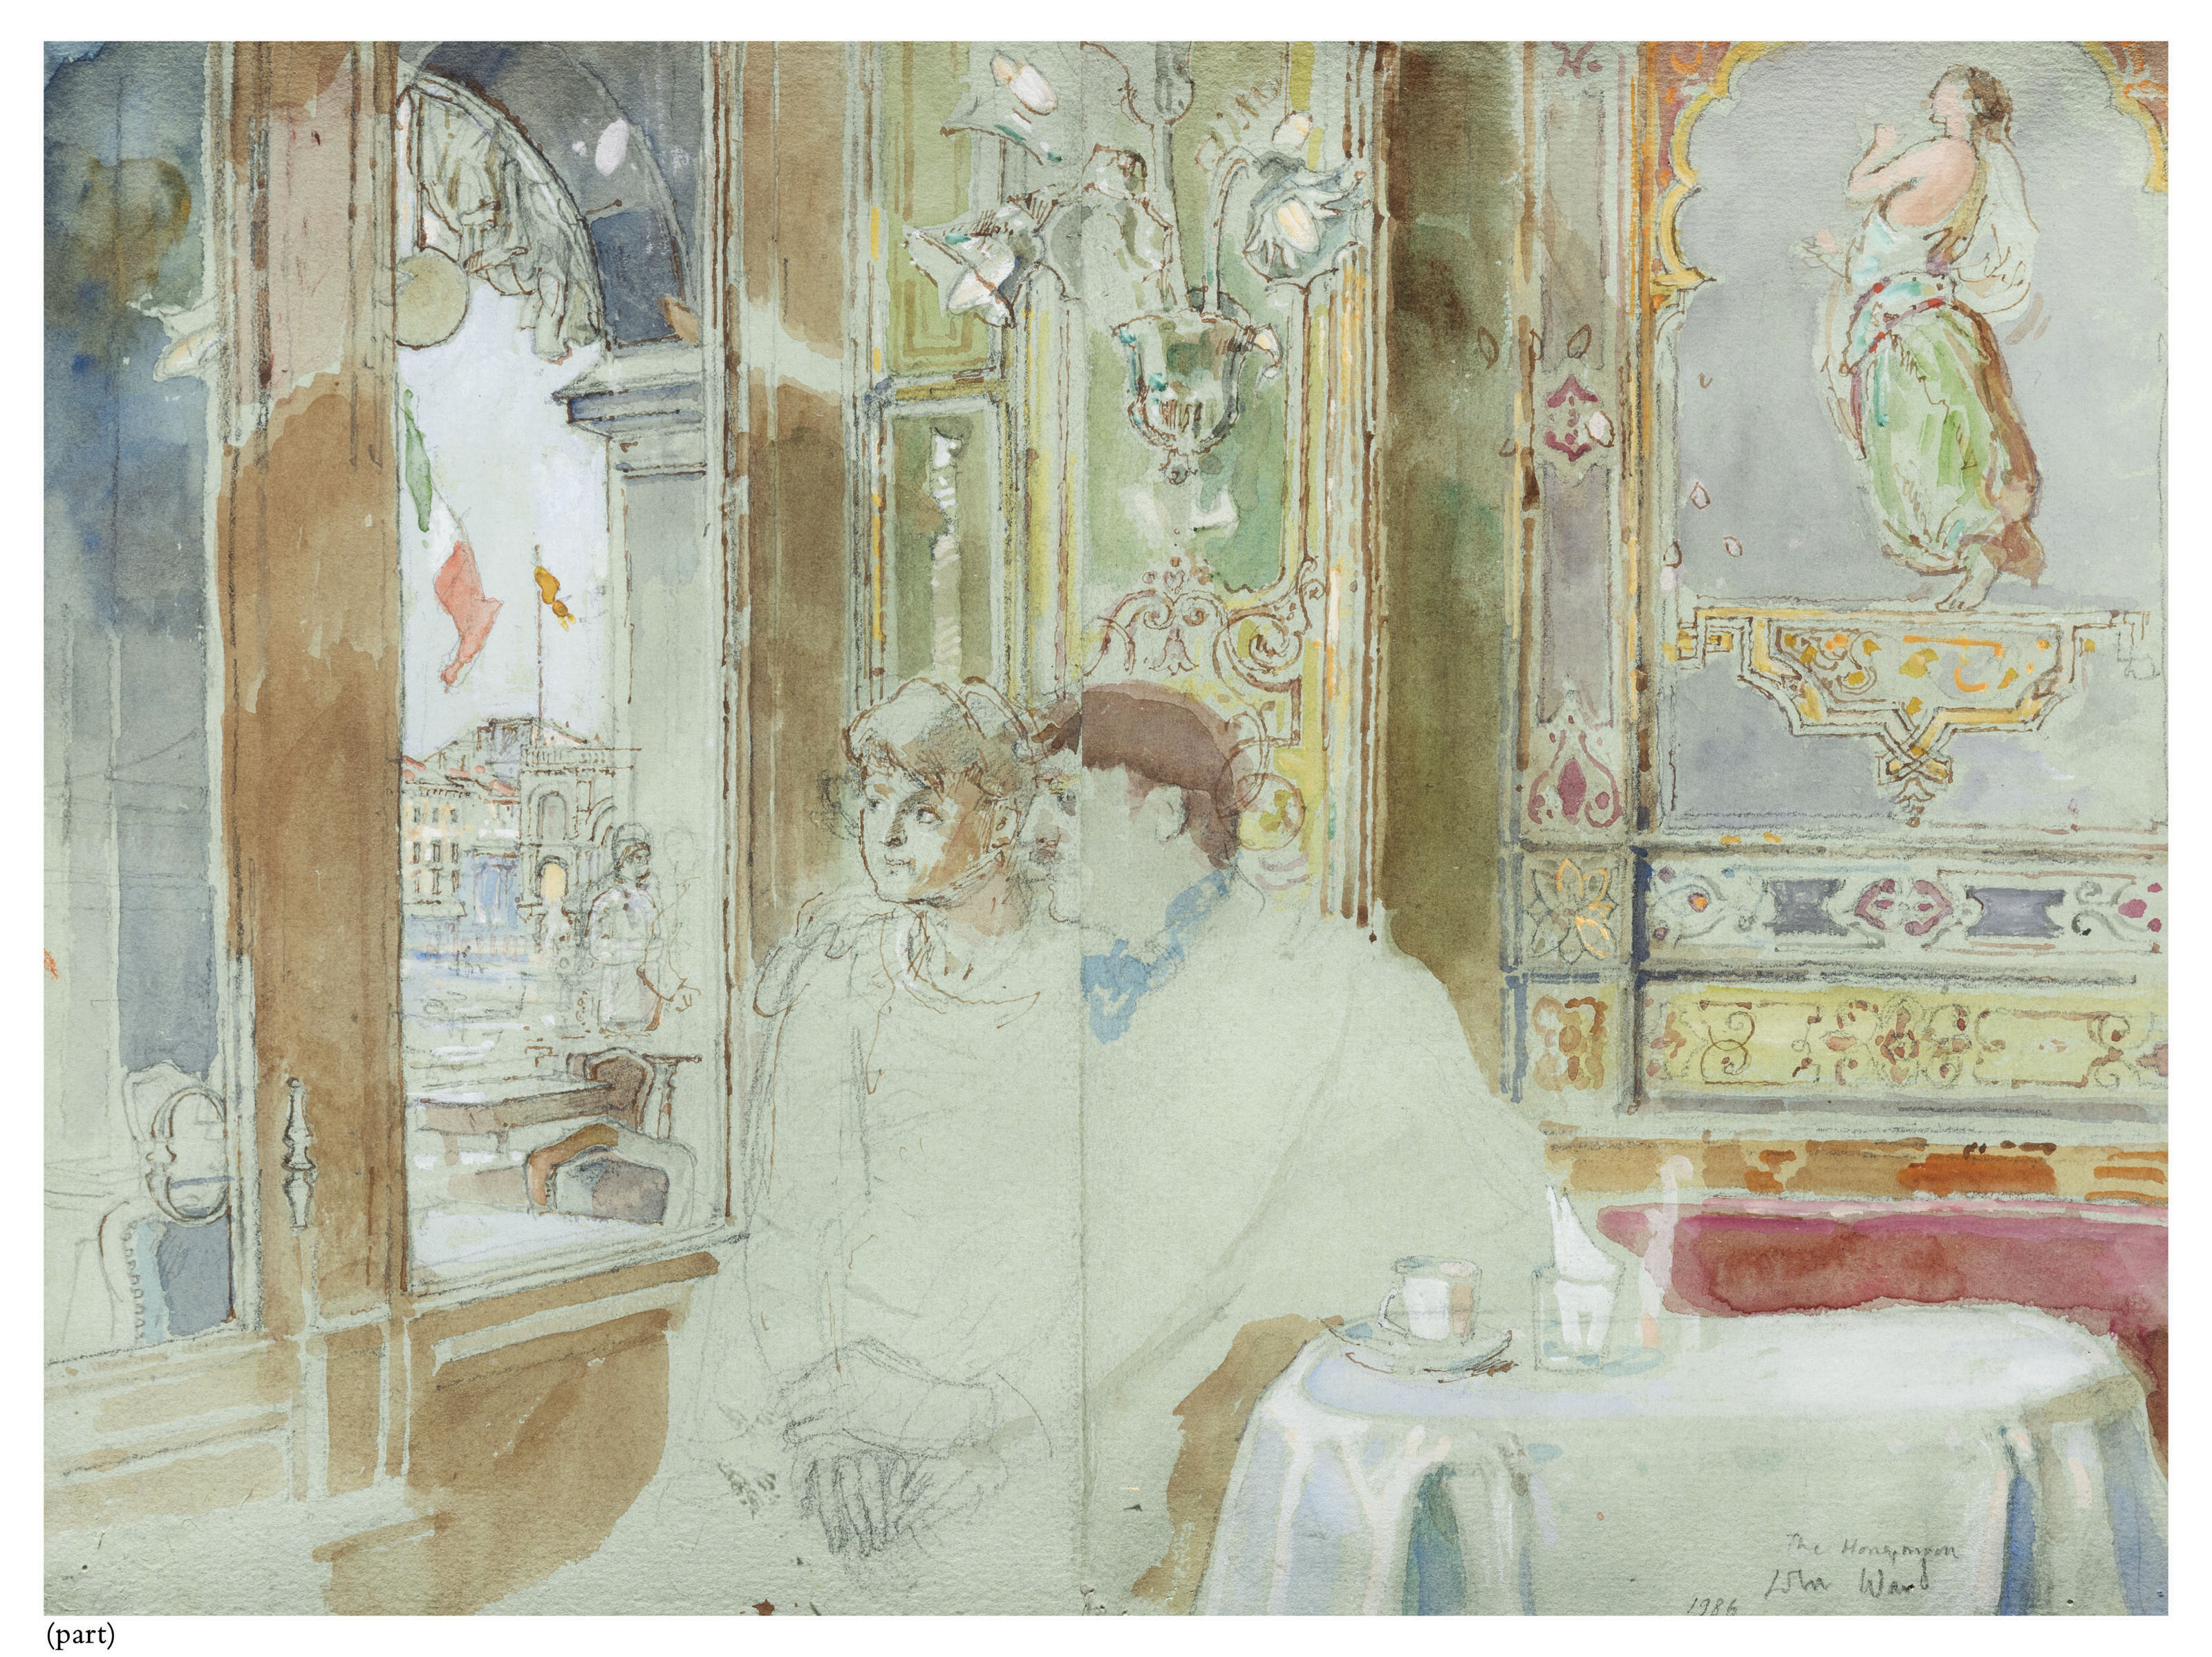 The honeymoon (i); A couple seated outside Florian's (ii); Interior of Florian's with portraits on the walls and umbrella stand (iii)